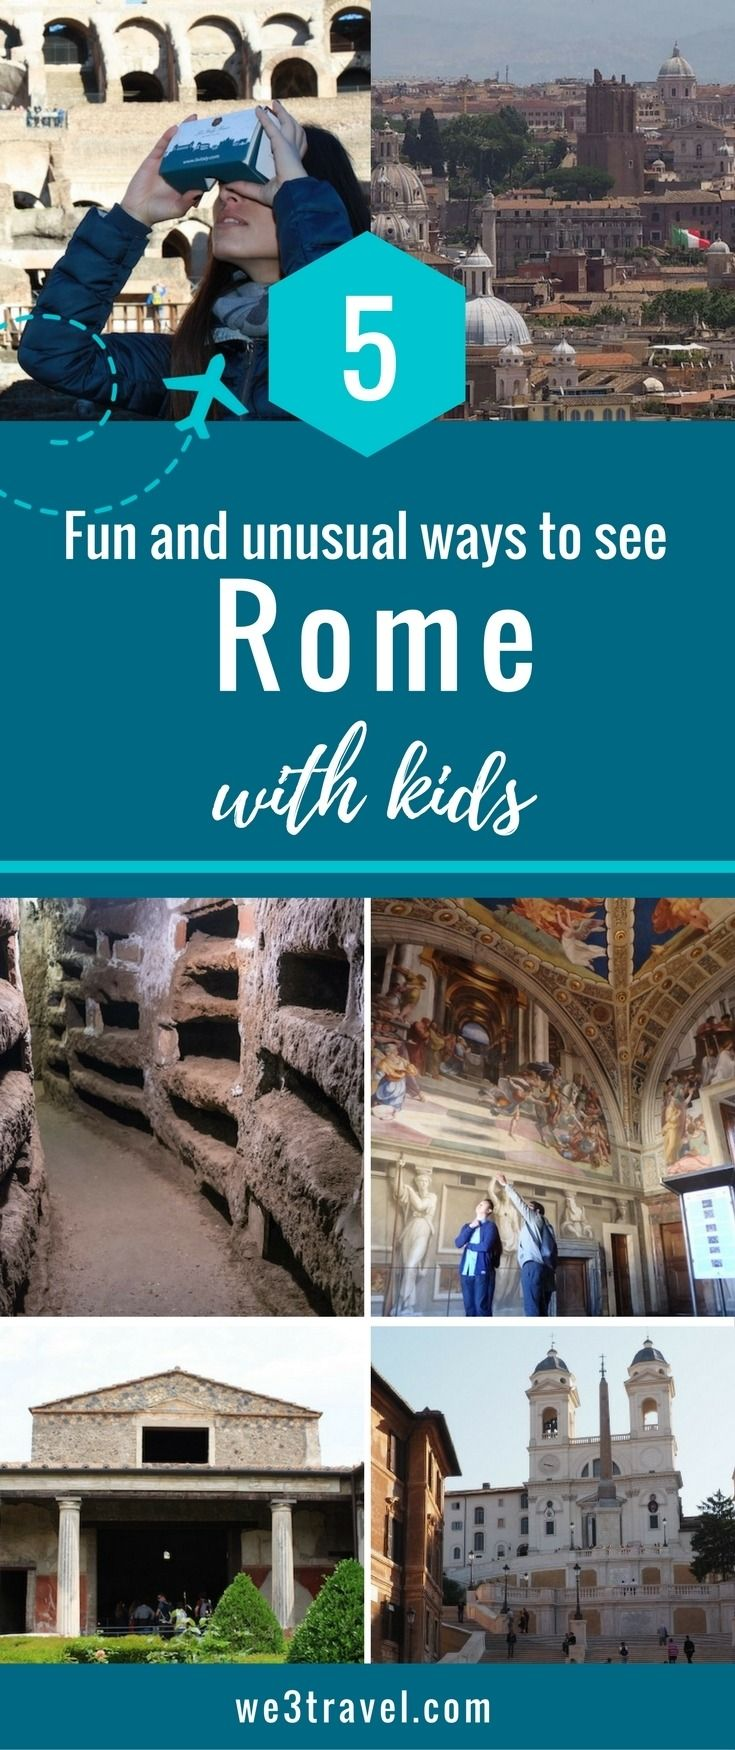 Rome travel tips: 5 fun and unusual ways to see Rome with kids | Italy